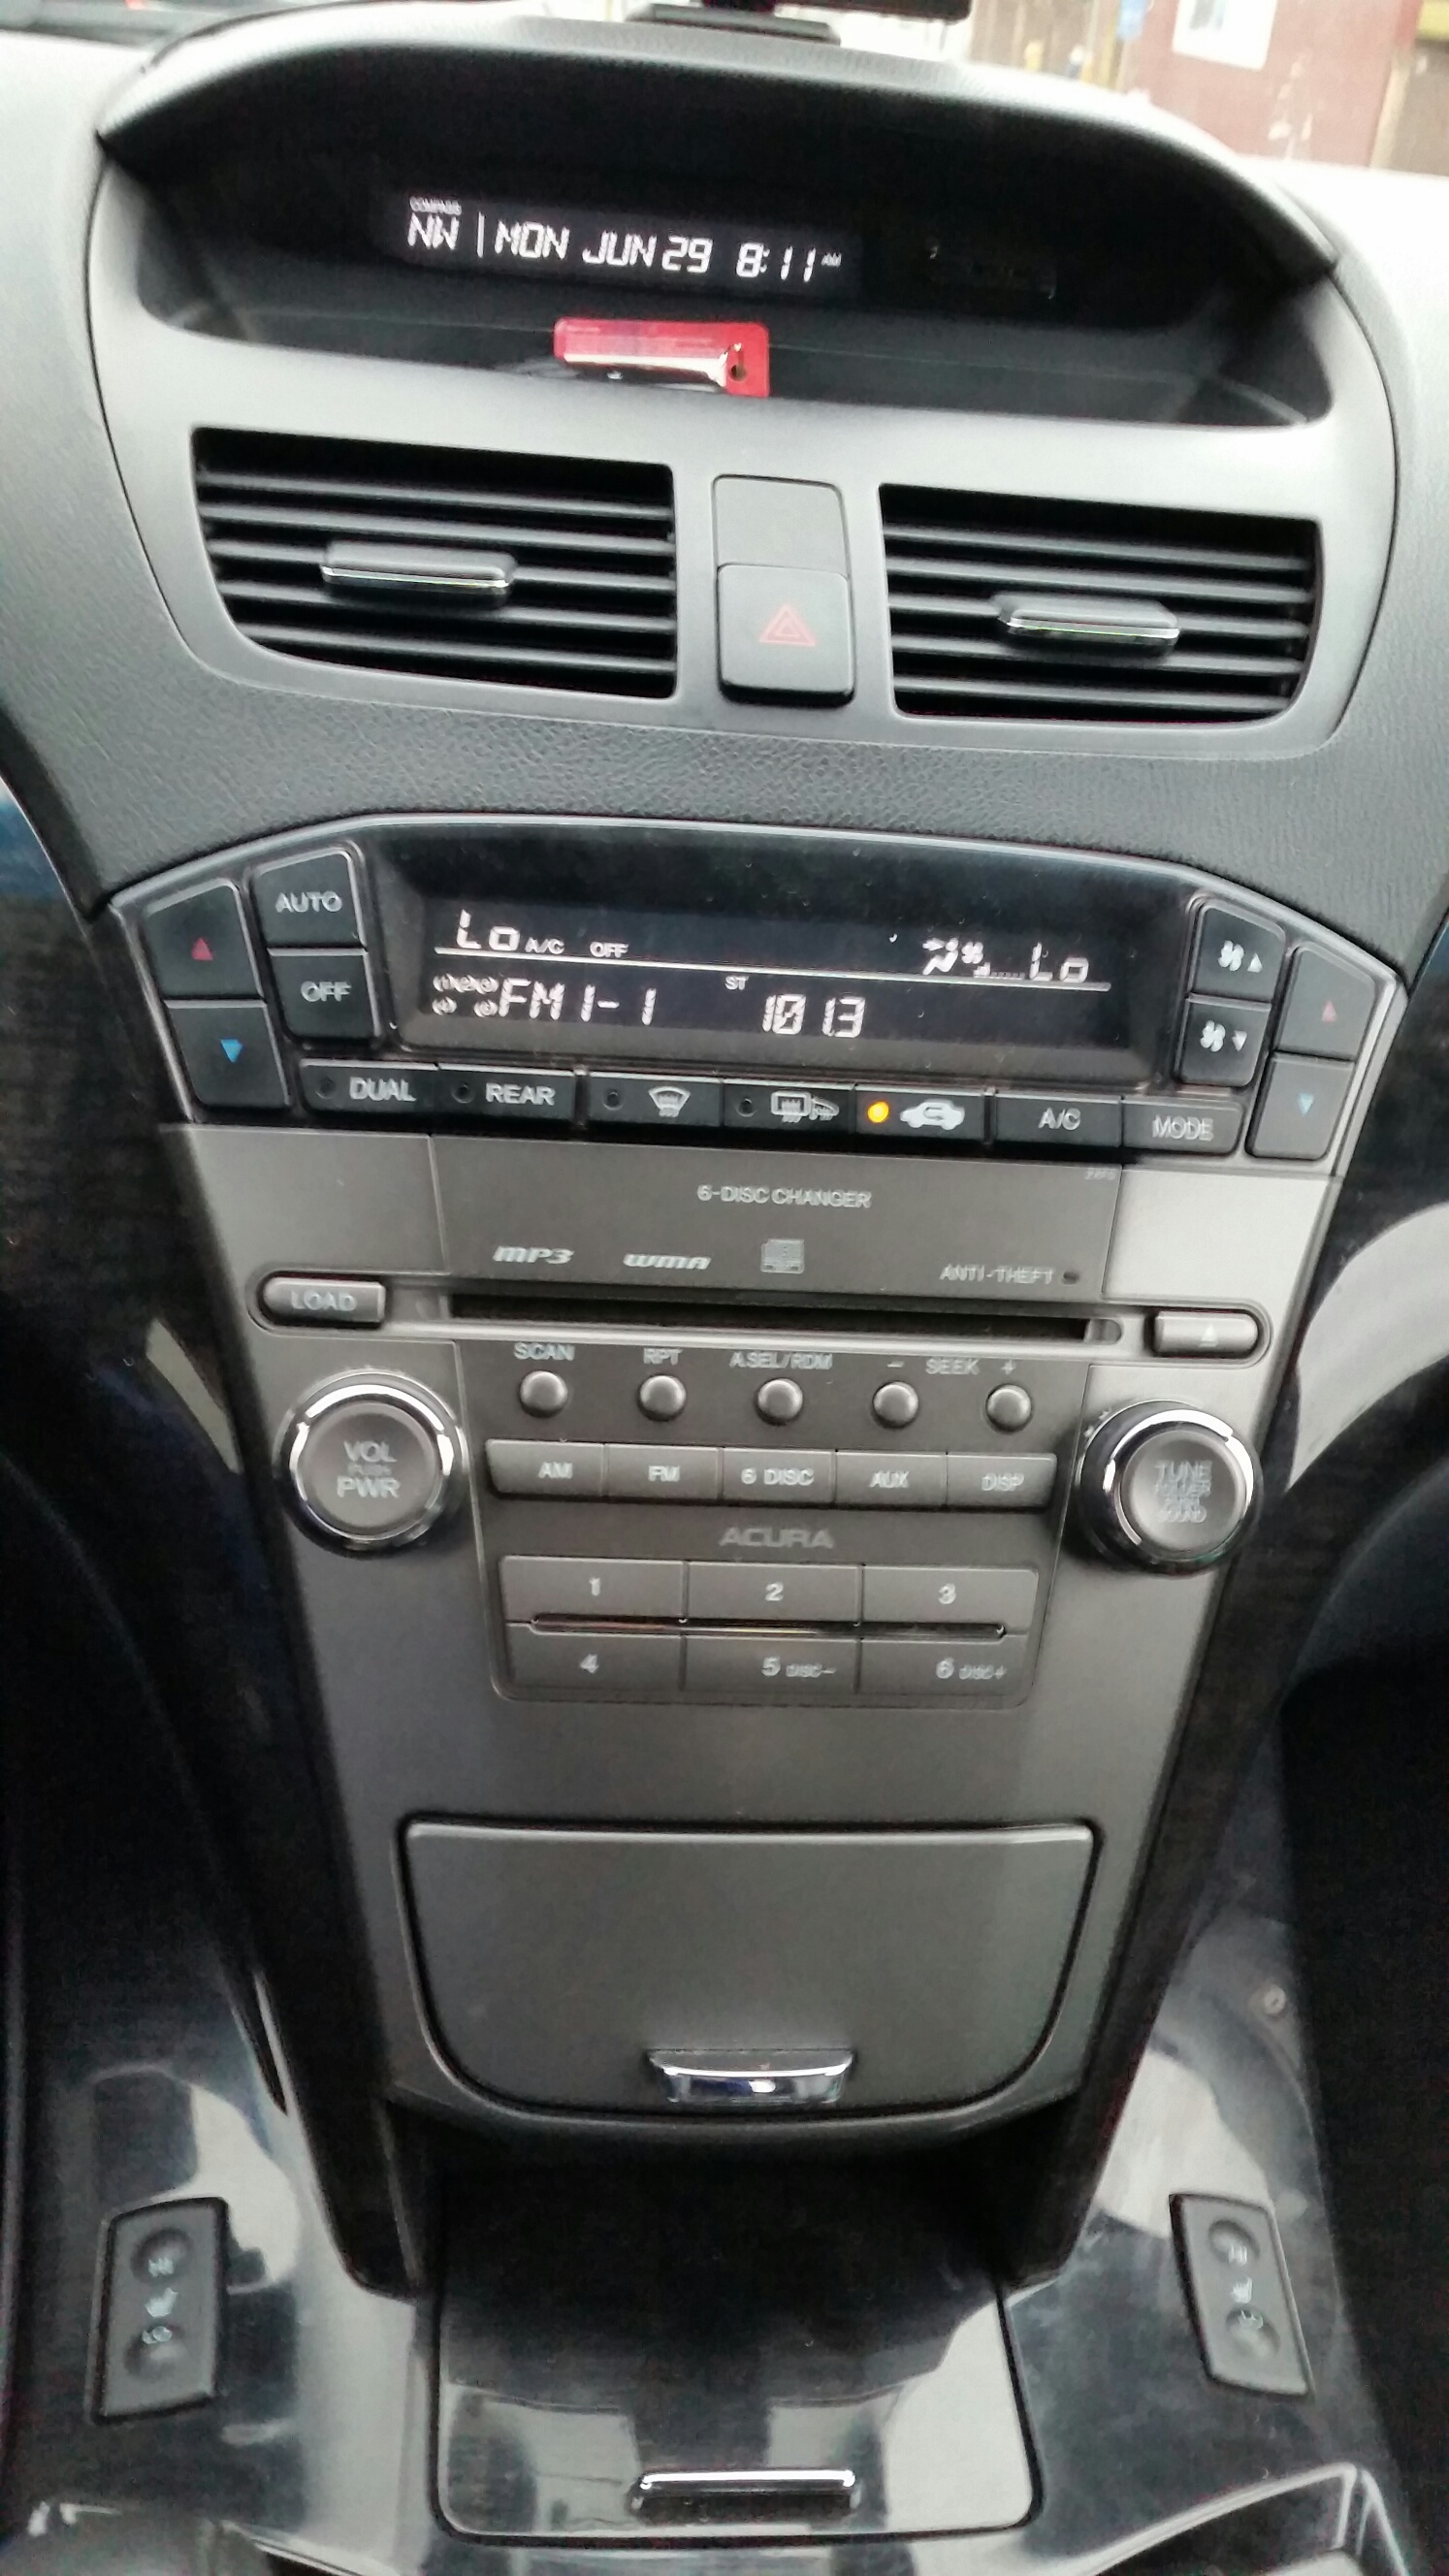 where to find a dash kit for an aftermarket stereo on a 08 acura